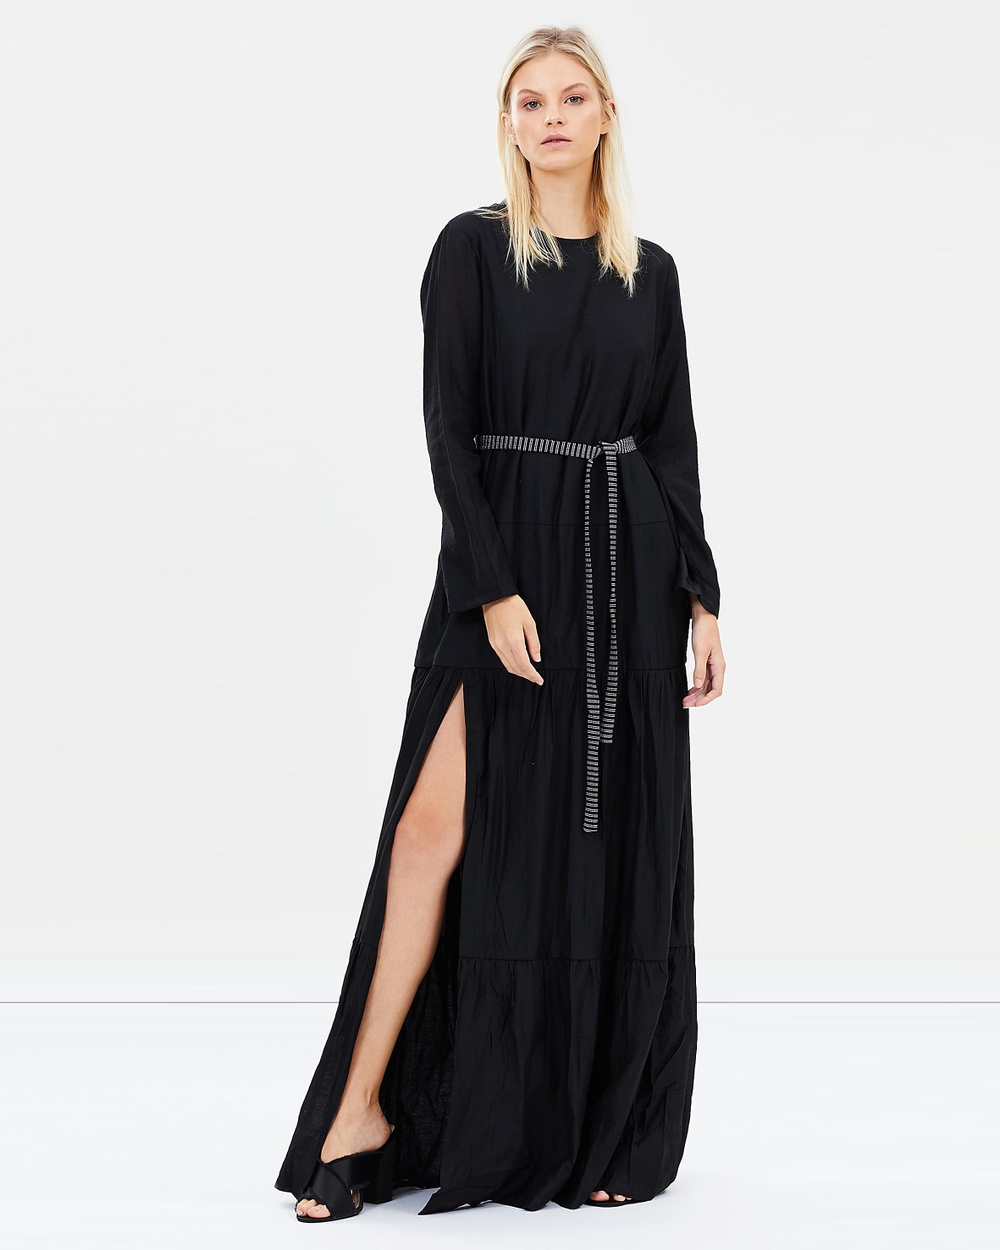 PFEIFFER The Rocket Gown Dresses Black The Rocket Gown